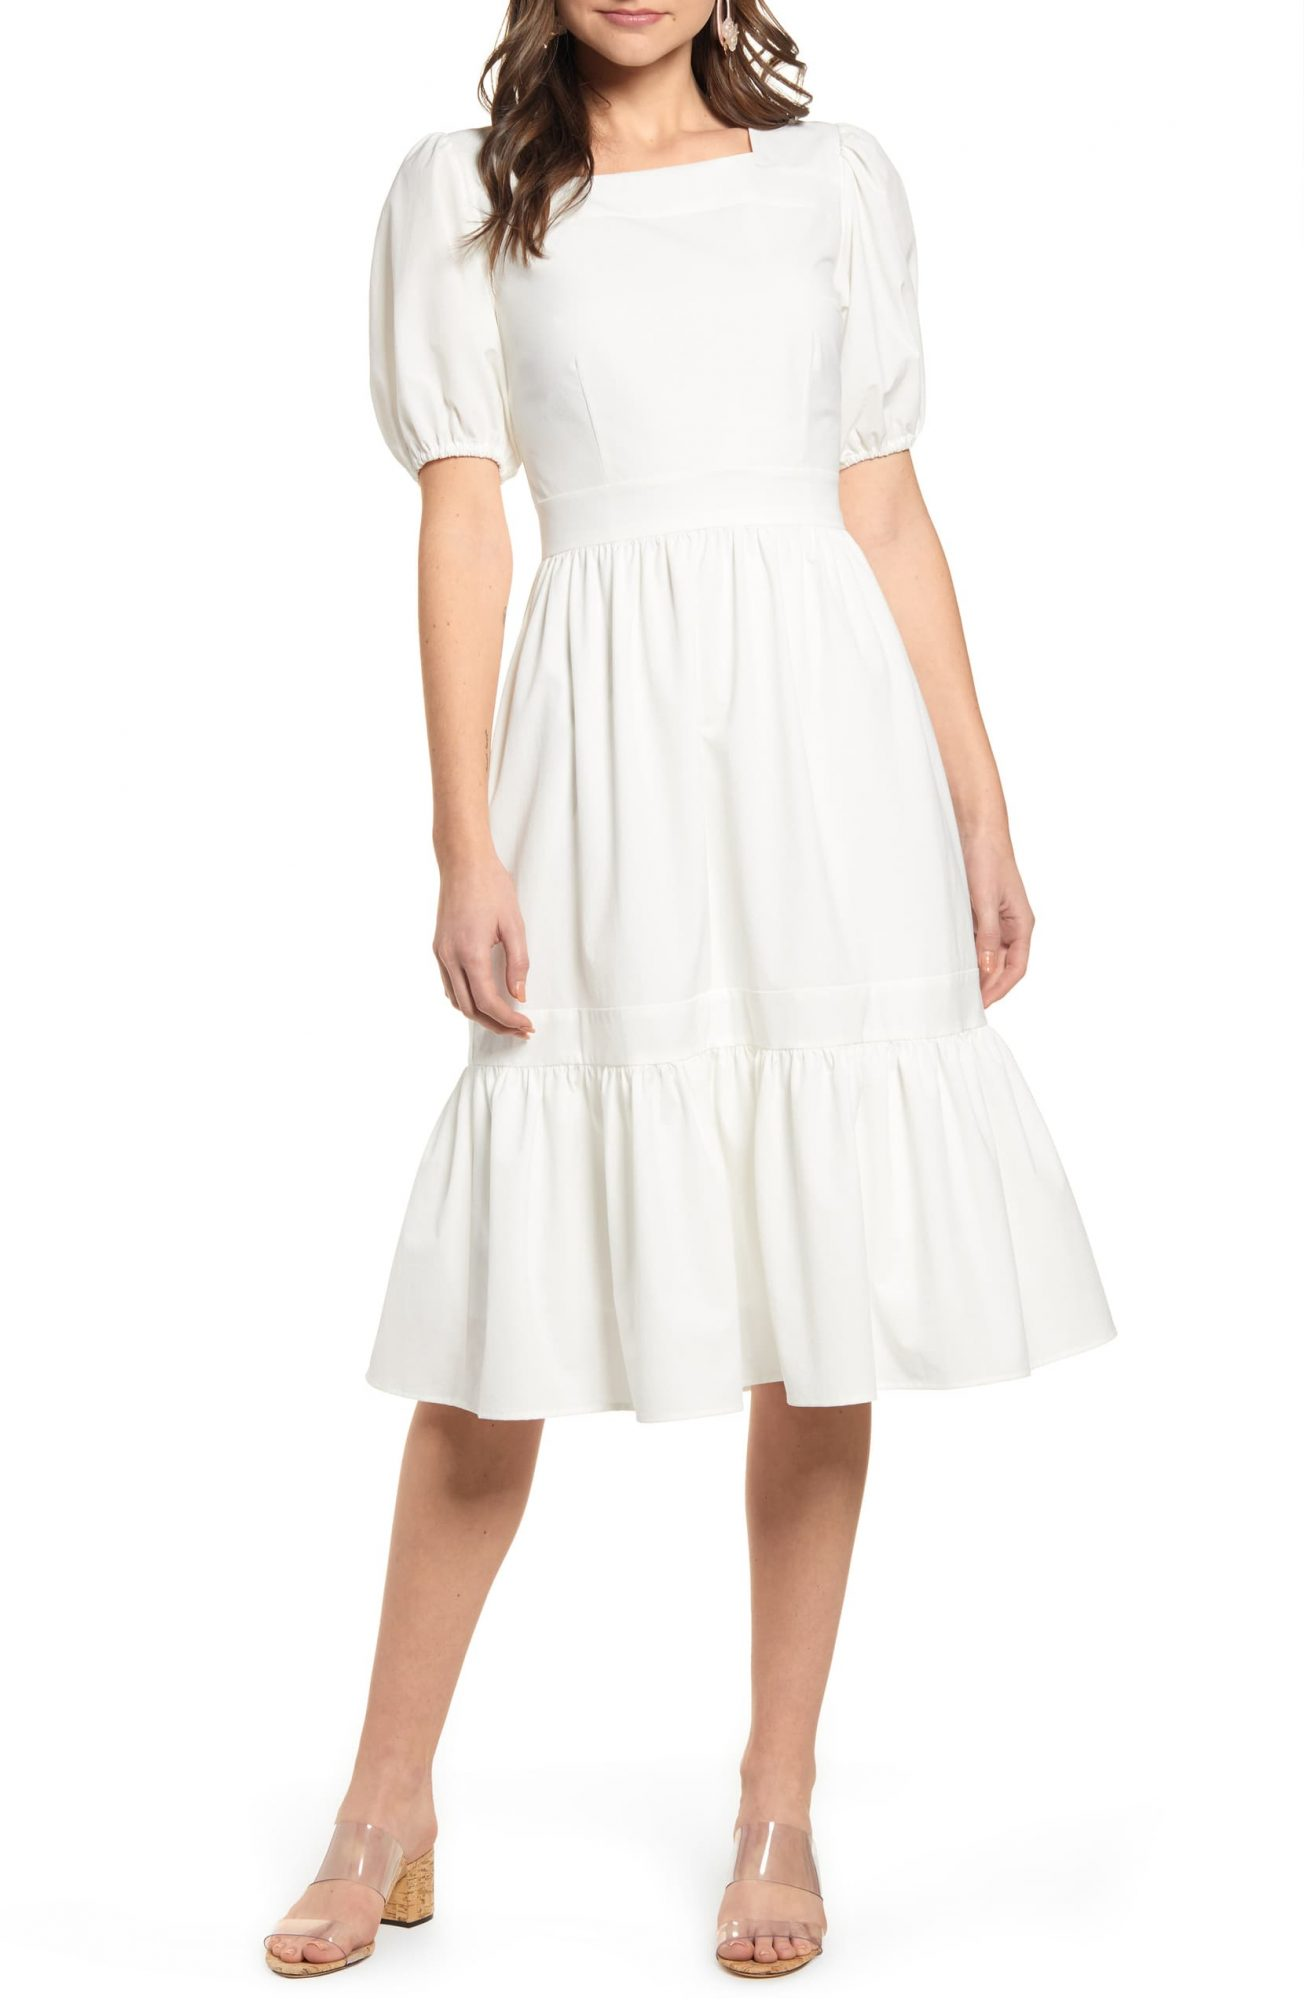 Rachel Parcell Puff Sleeve Dress at Nordstrom